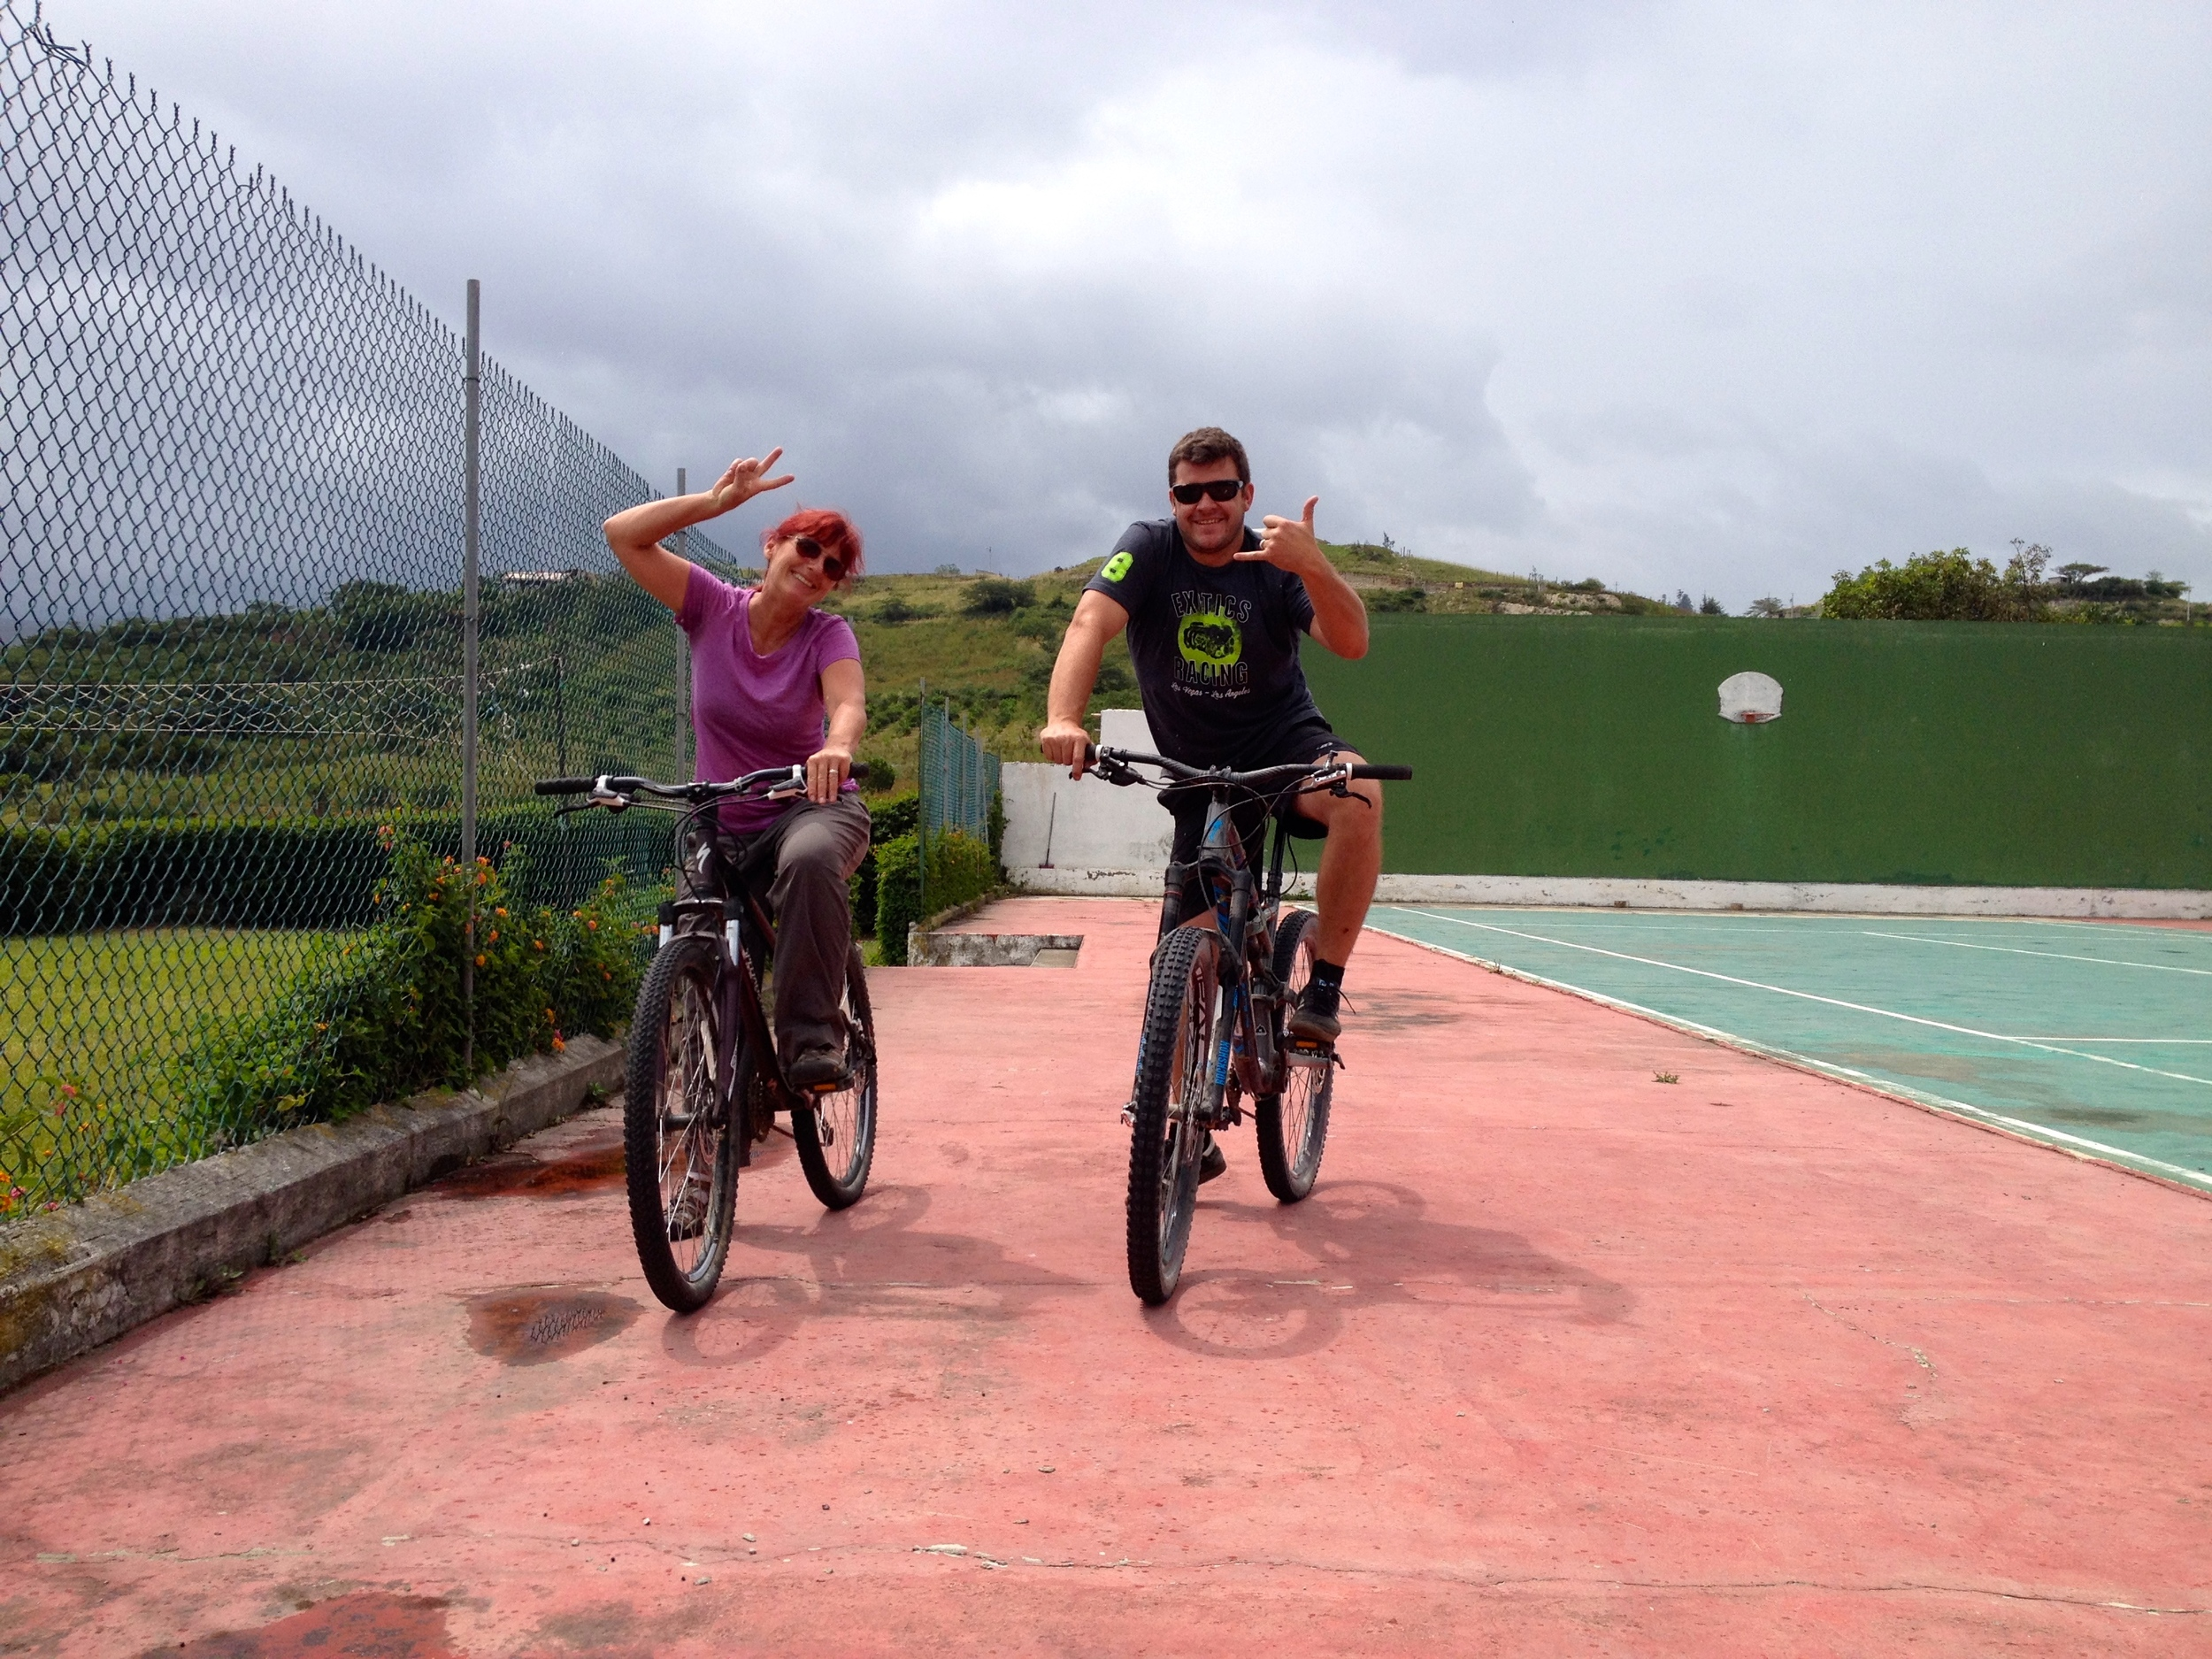 I got to go for a mountain bike ride up the mountain with Felipe.